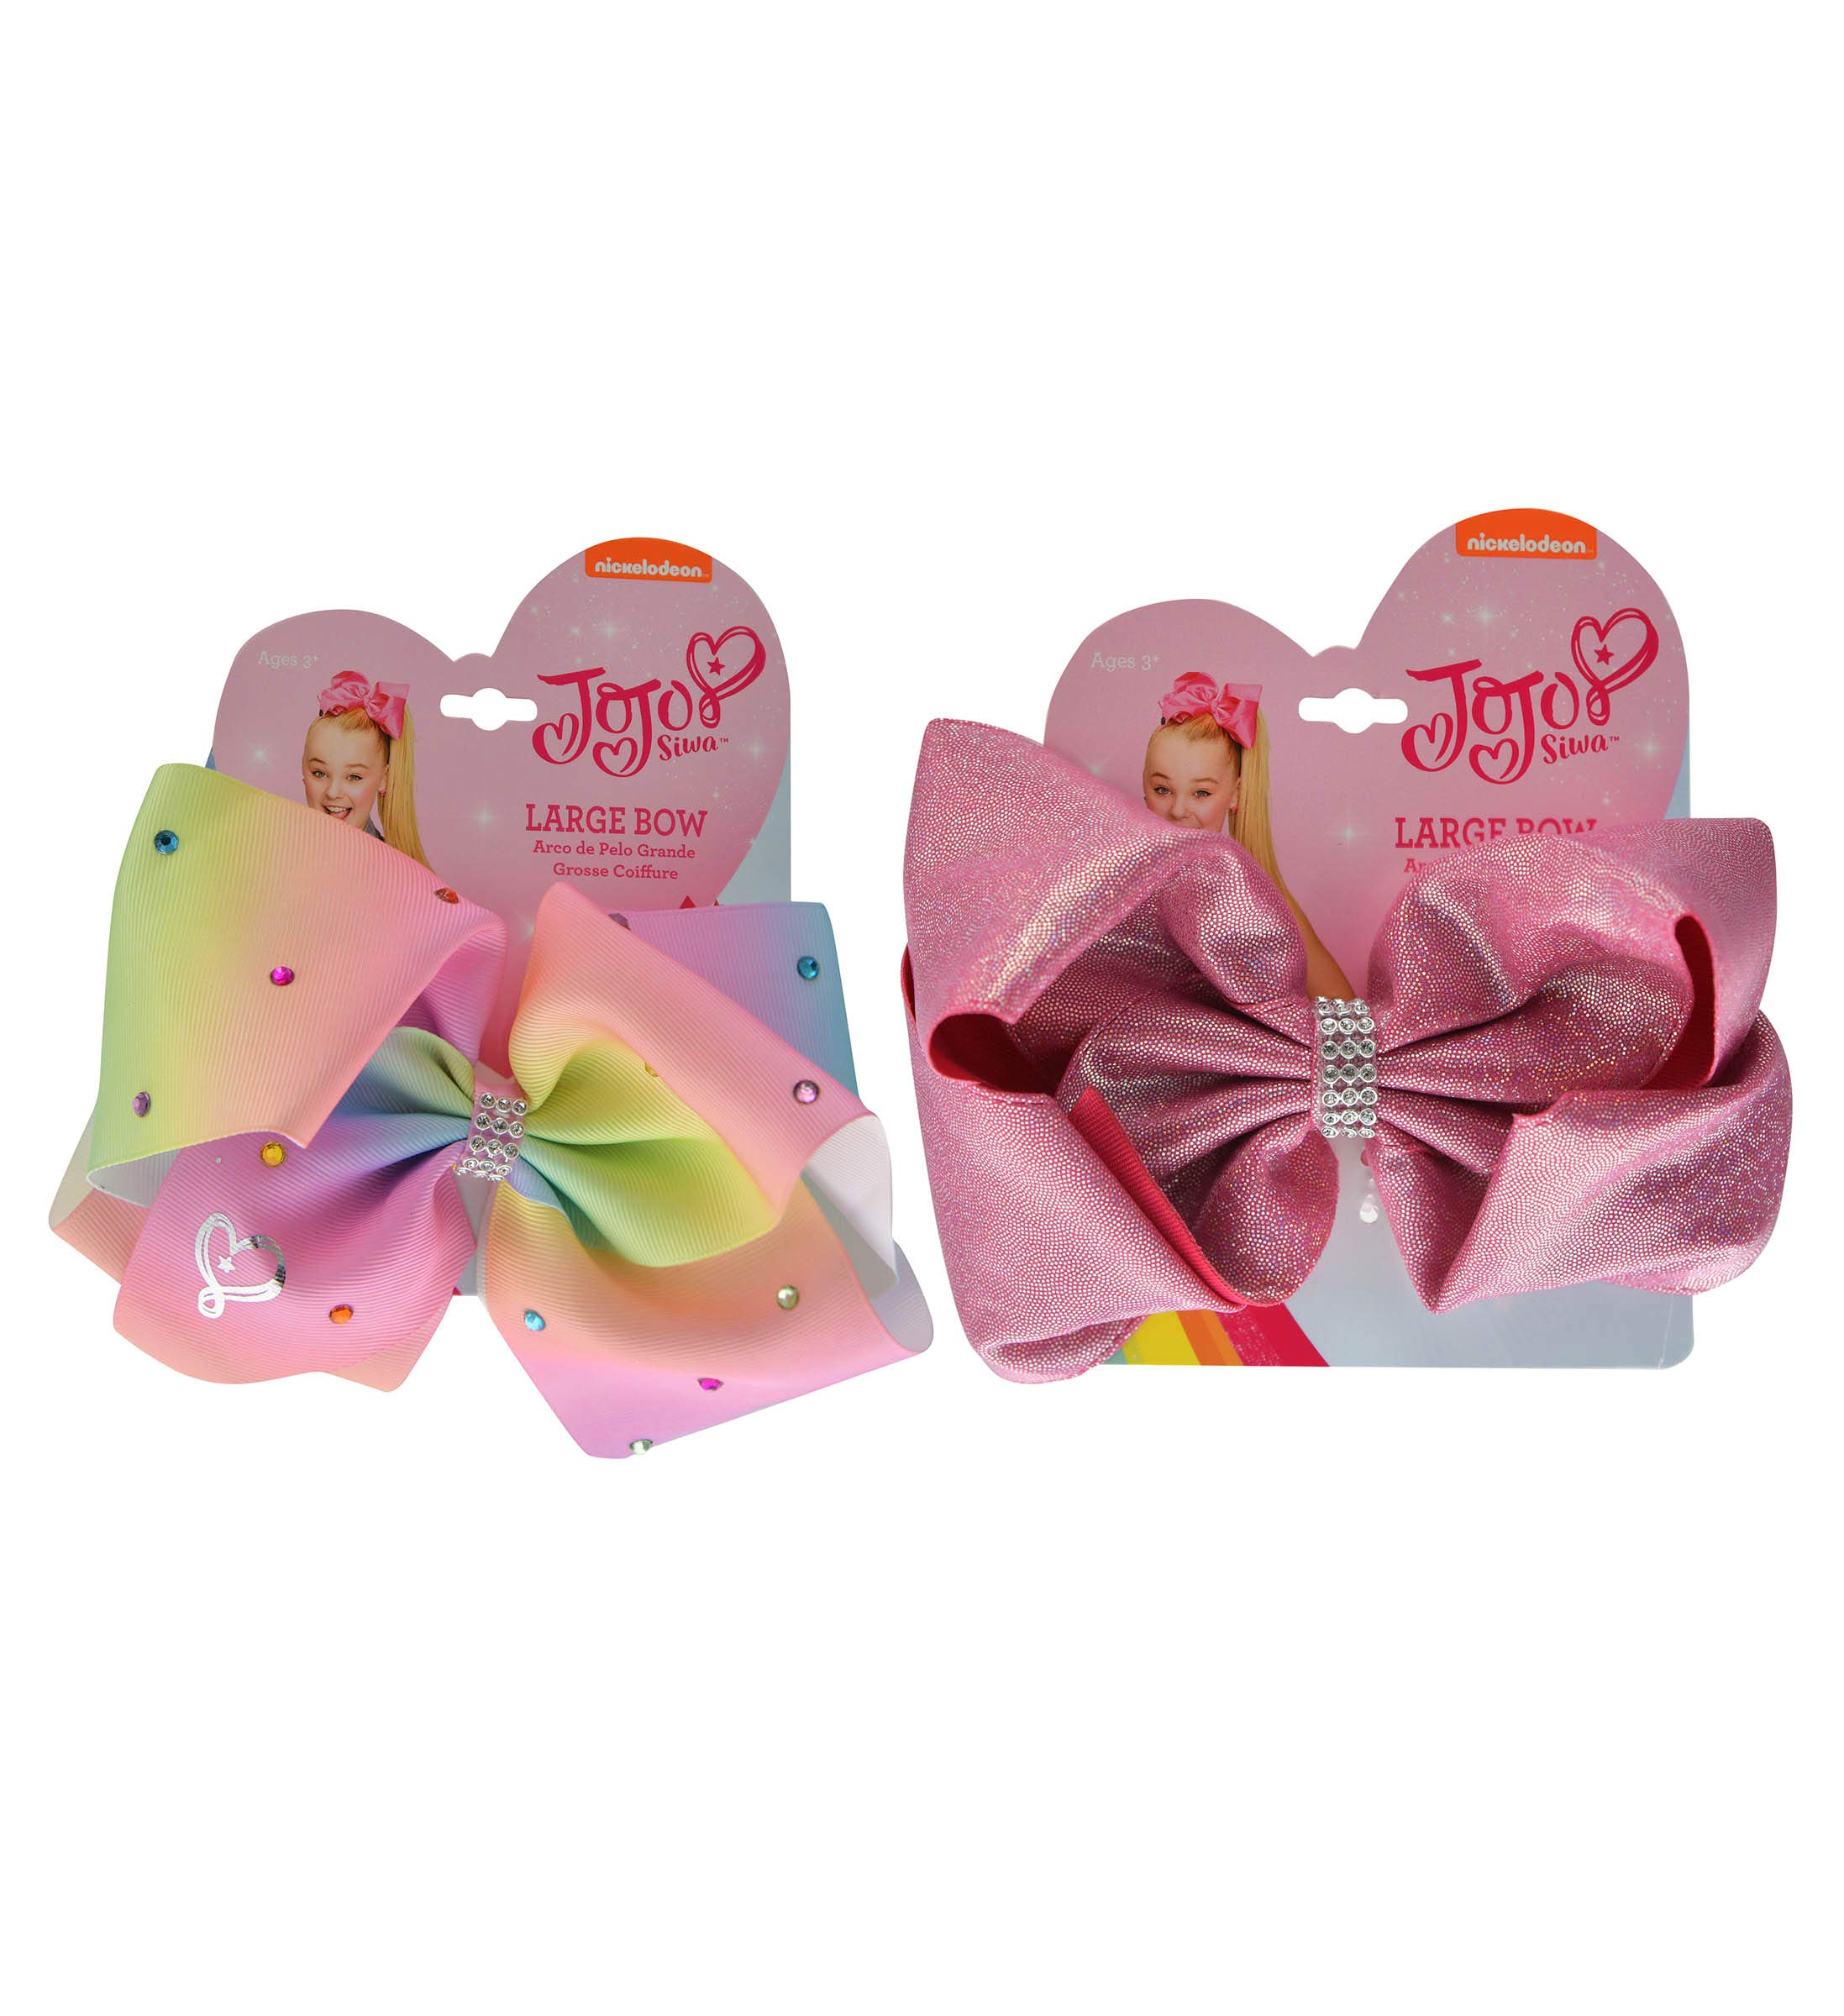 Mozlly Value Pack - JoJo Siwa Girls Rhinestone Pastel and Pink Glitter Signature Collection Hair Bow Clips - 5 x 5 inch - Elastic Pony - Novelty Fashion Collectibles (2 Items)